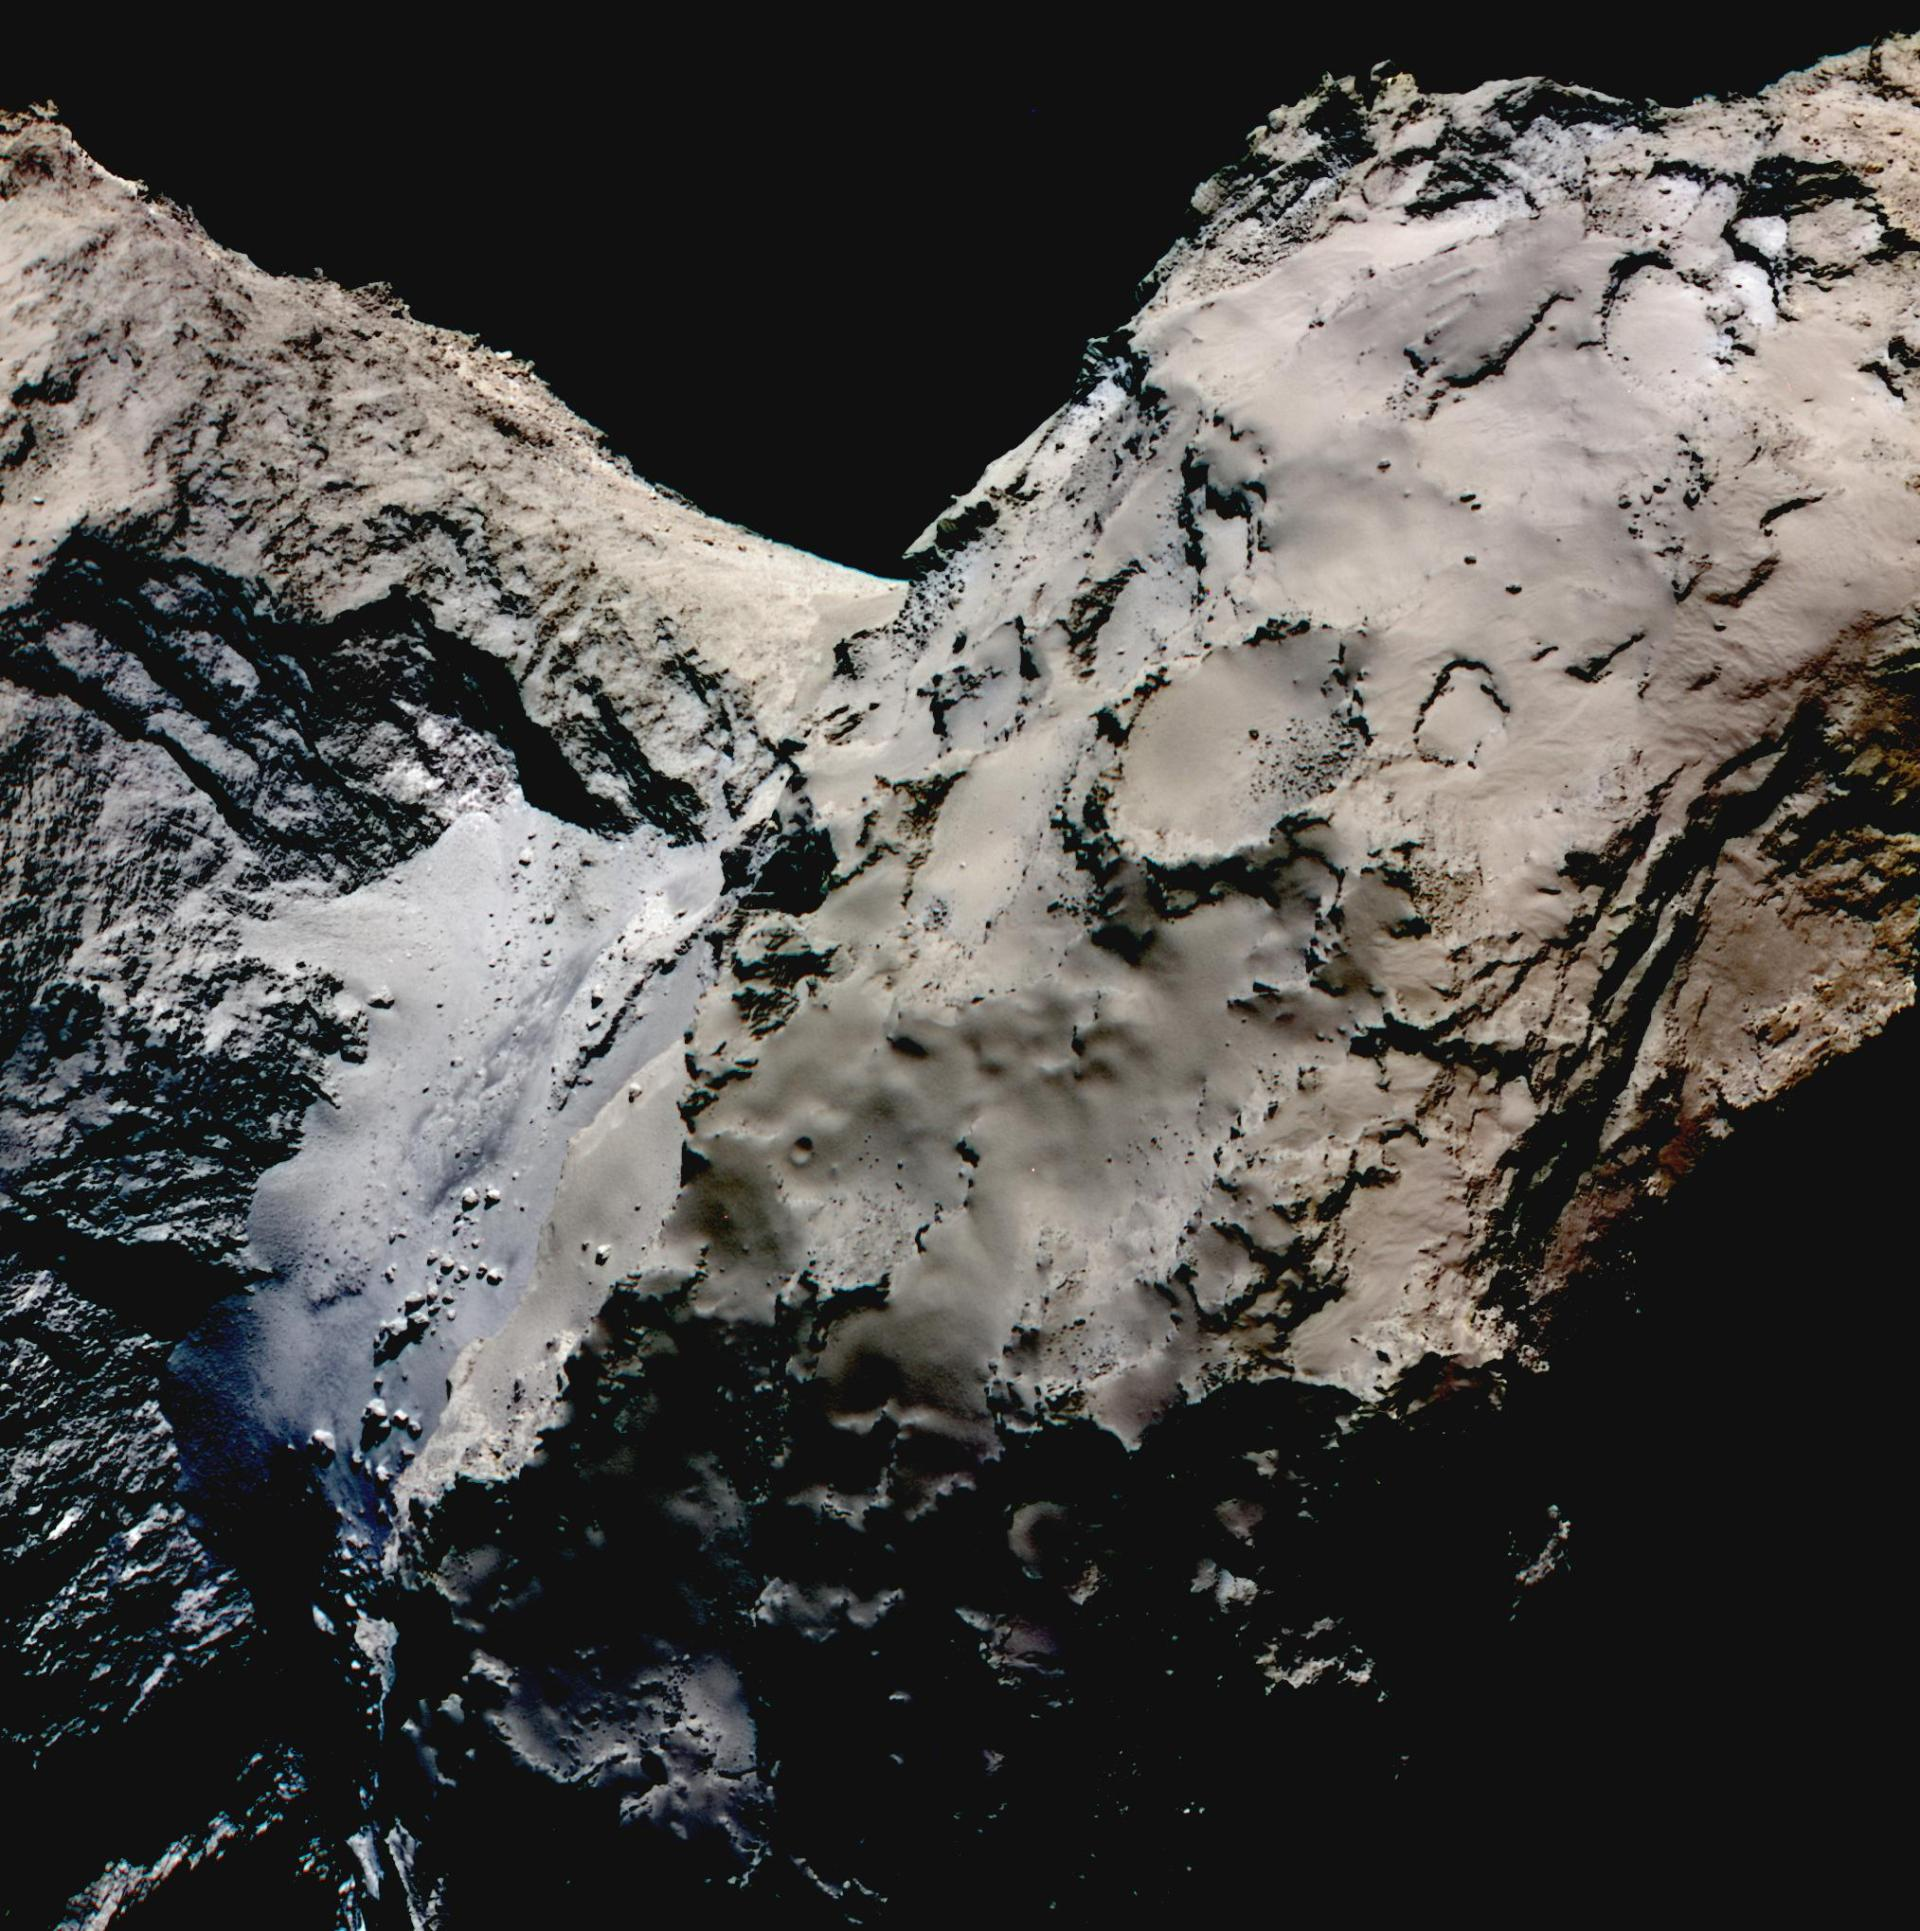 False-colour image of the Hapi region on 67P